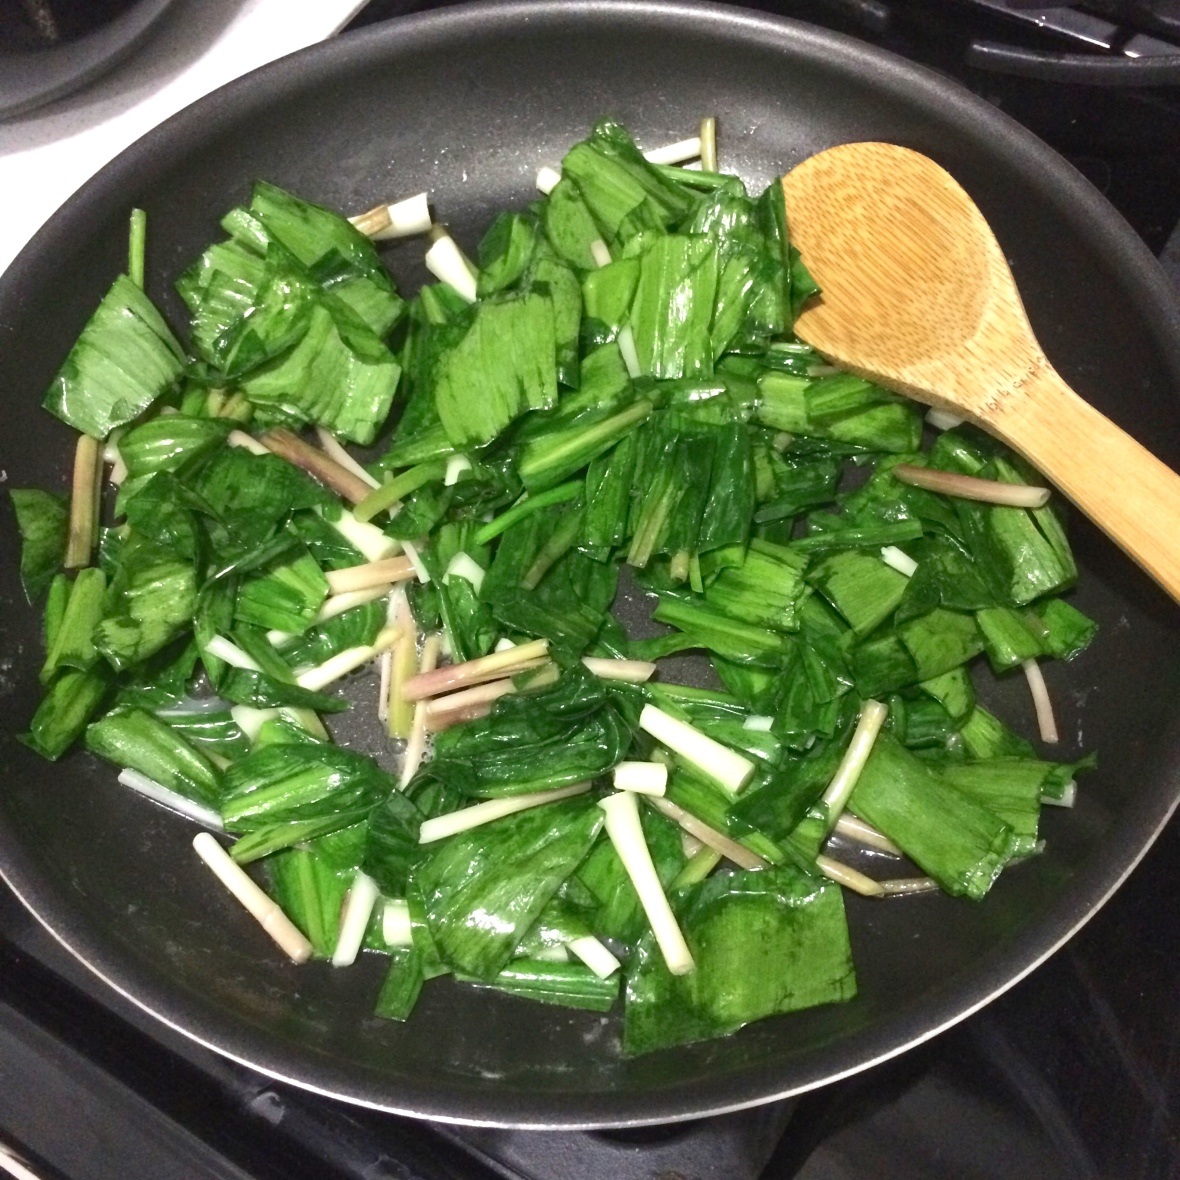 Sauté the chopped ramps in good butter.